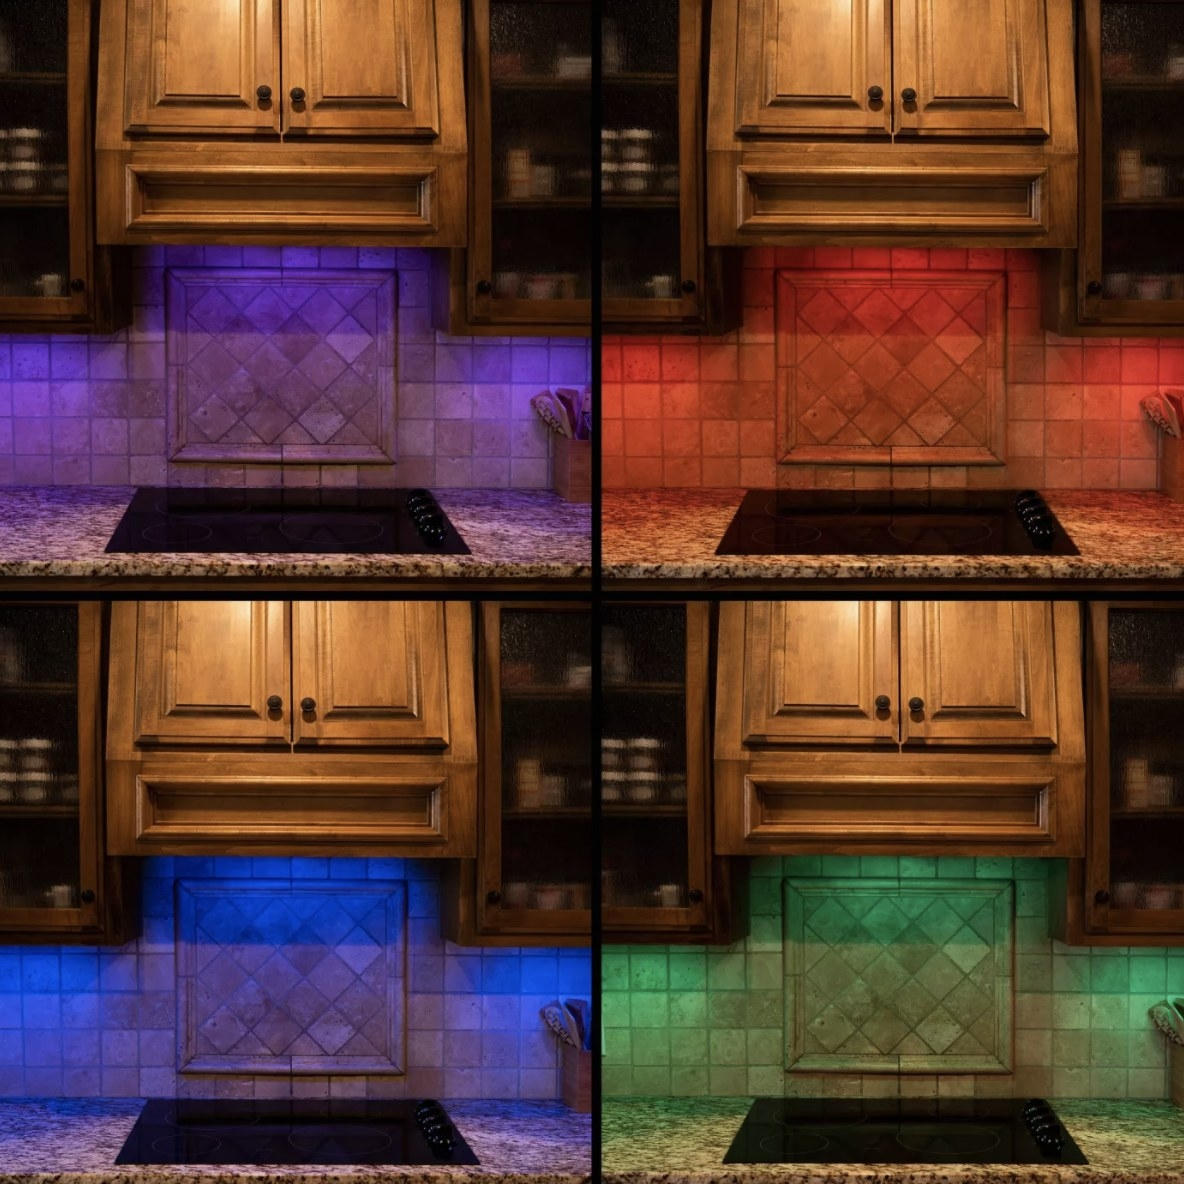 There are four separate cabinets with purple, red, blue and green light examples